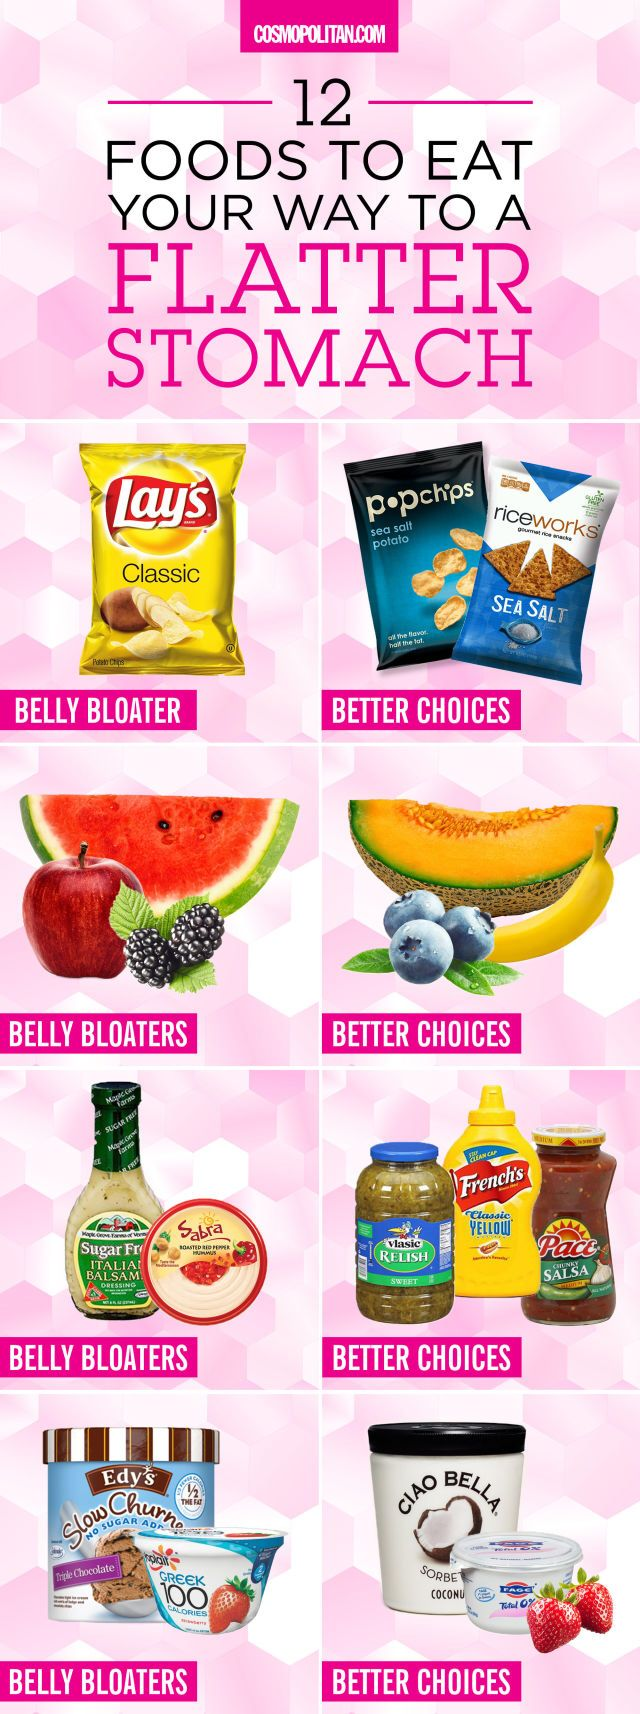 deff frukost tips to lose weight